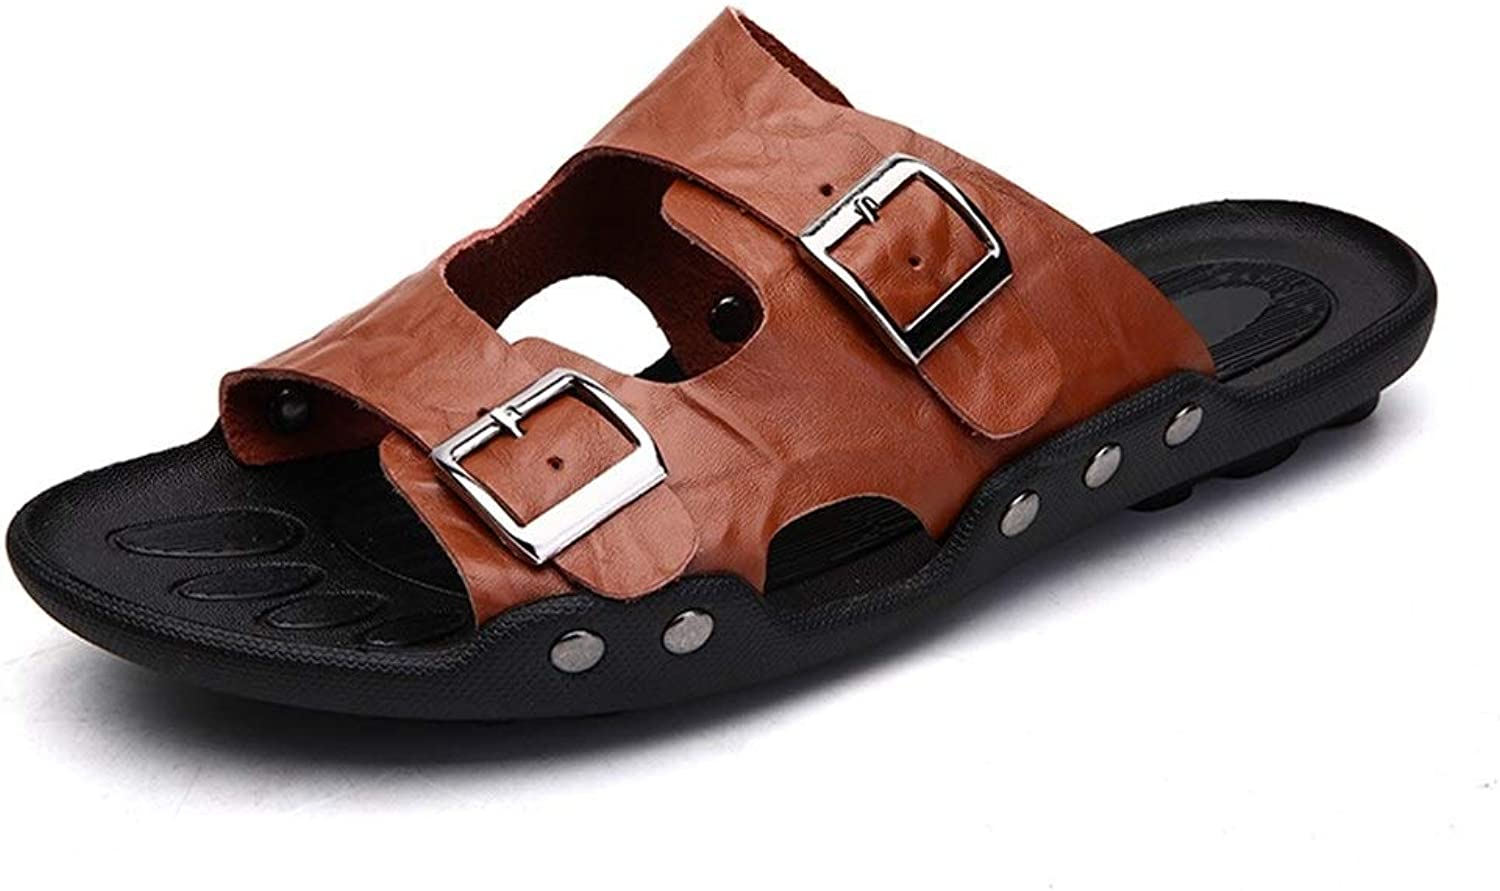 Sandals for Men Slipper shoes Slip On Style OX Leather Fashion Alloy Buckle Insouciant Solid color Casual shoes